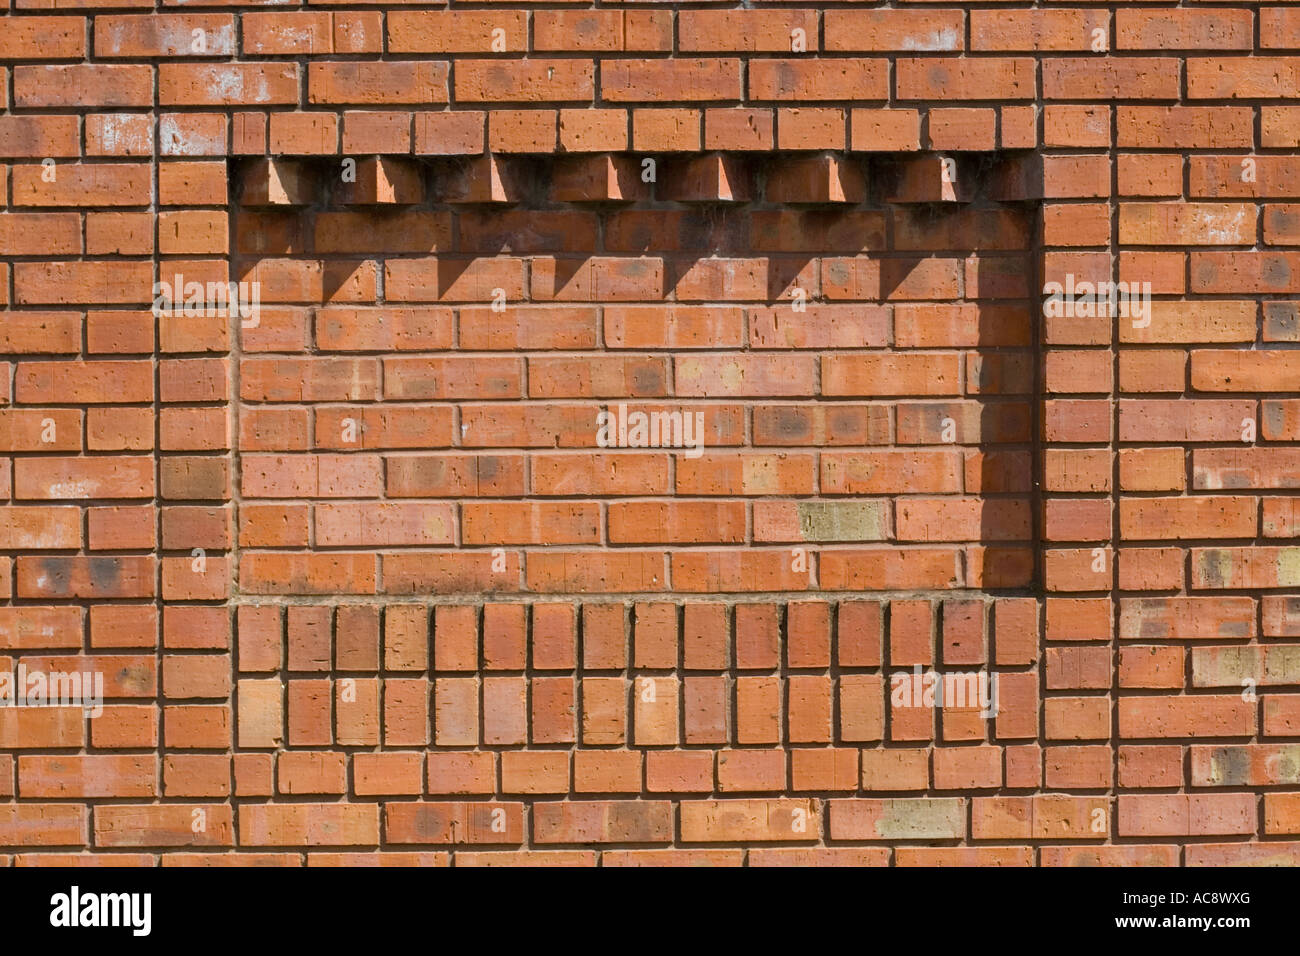 patterns on brick walls - photo #16